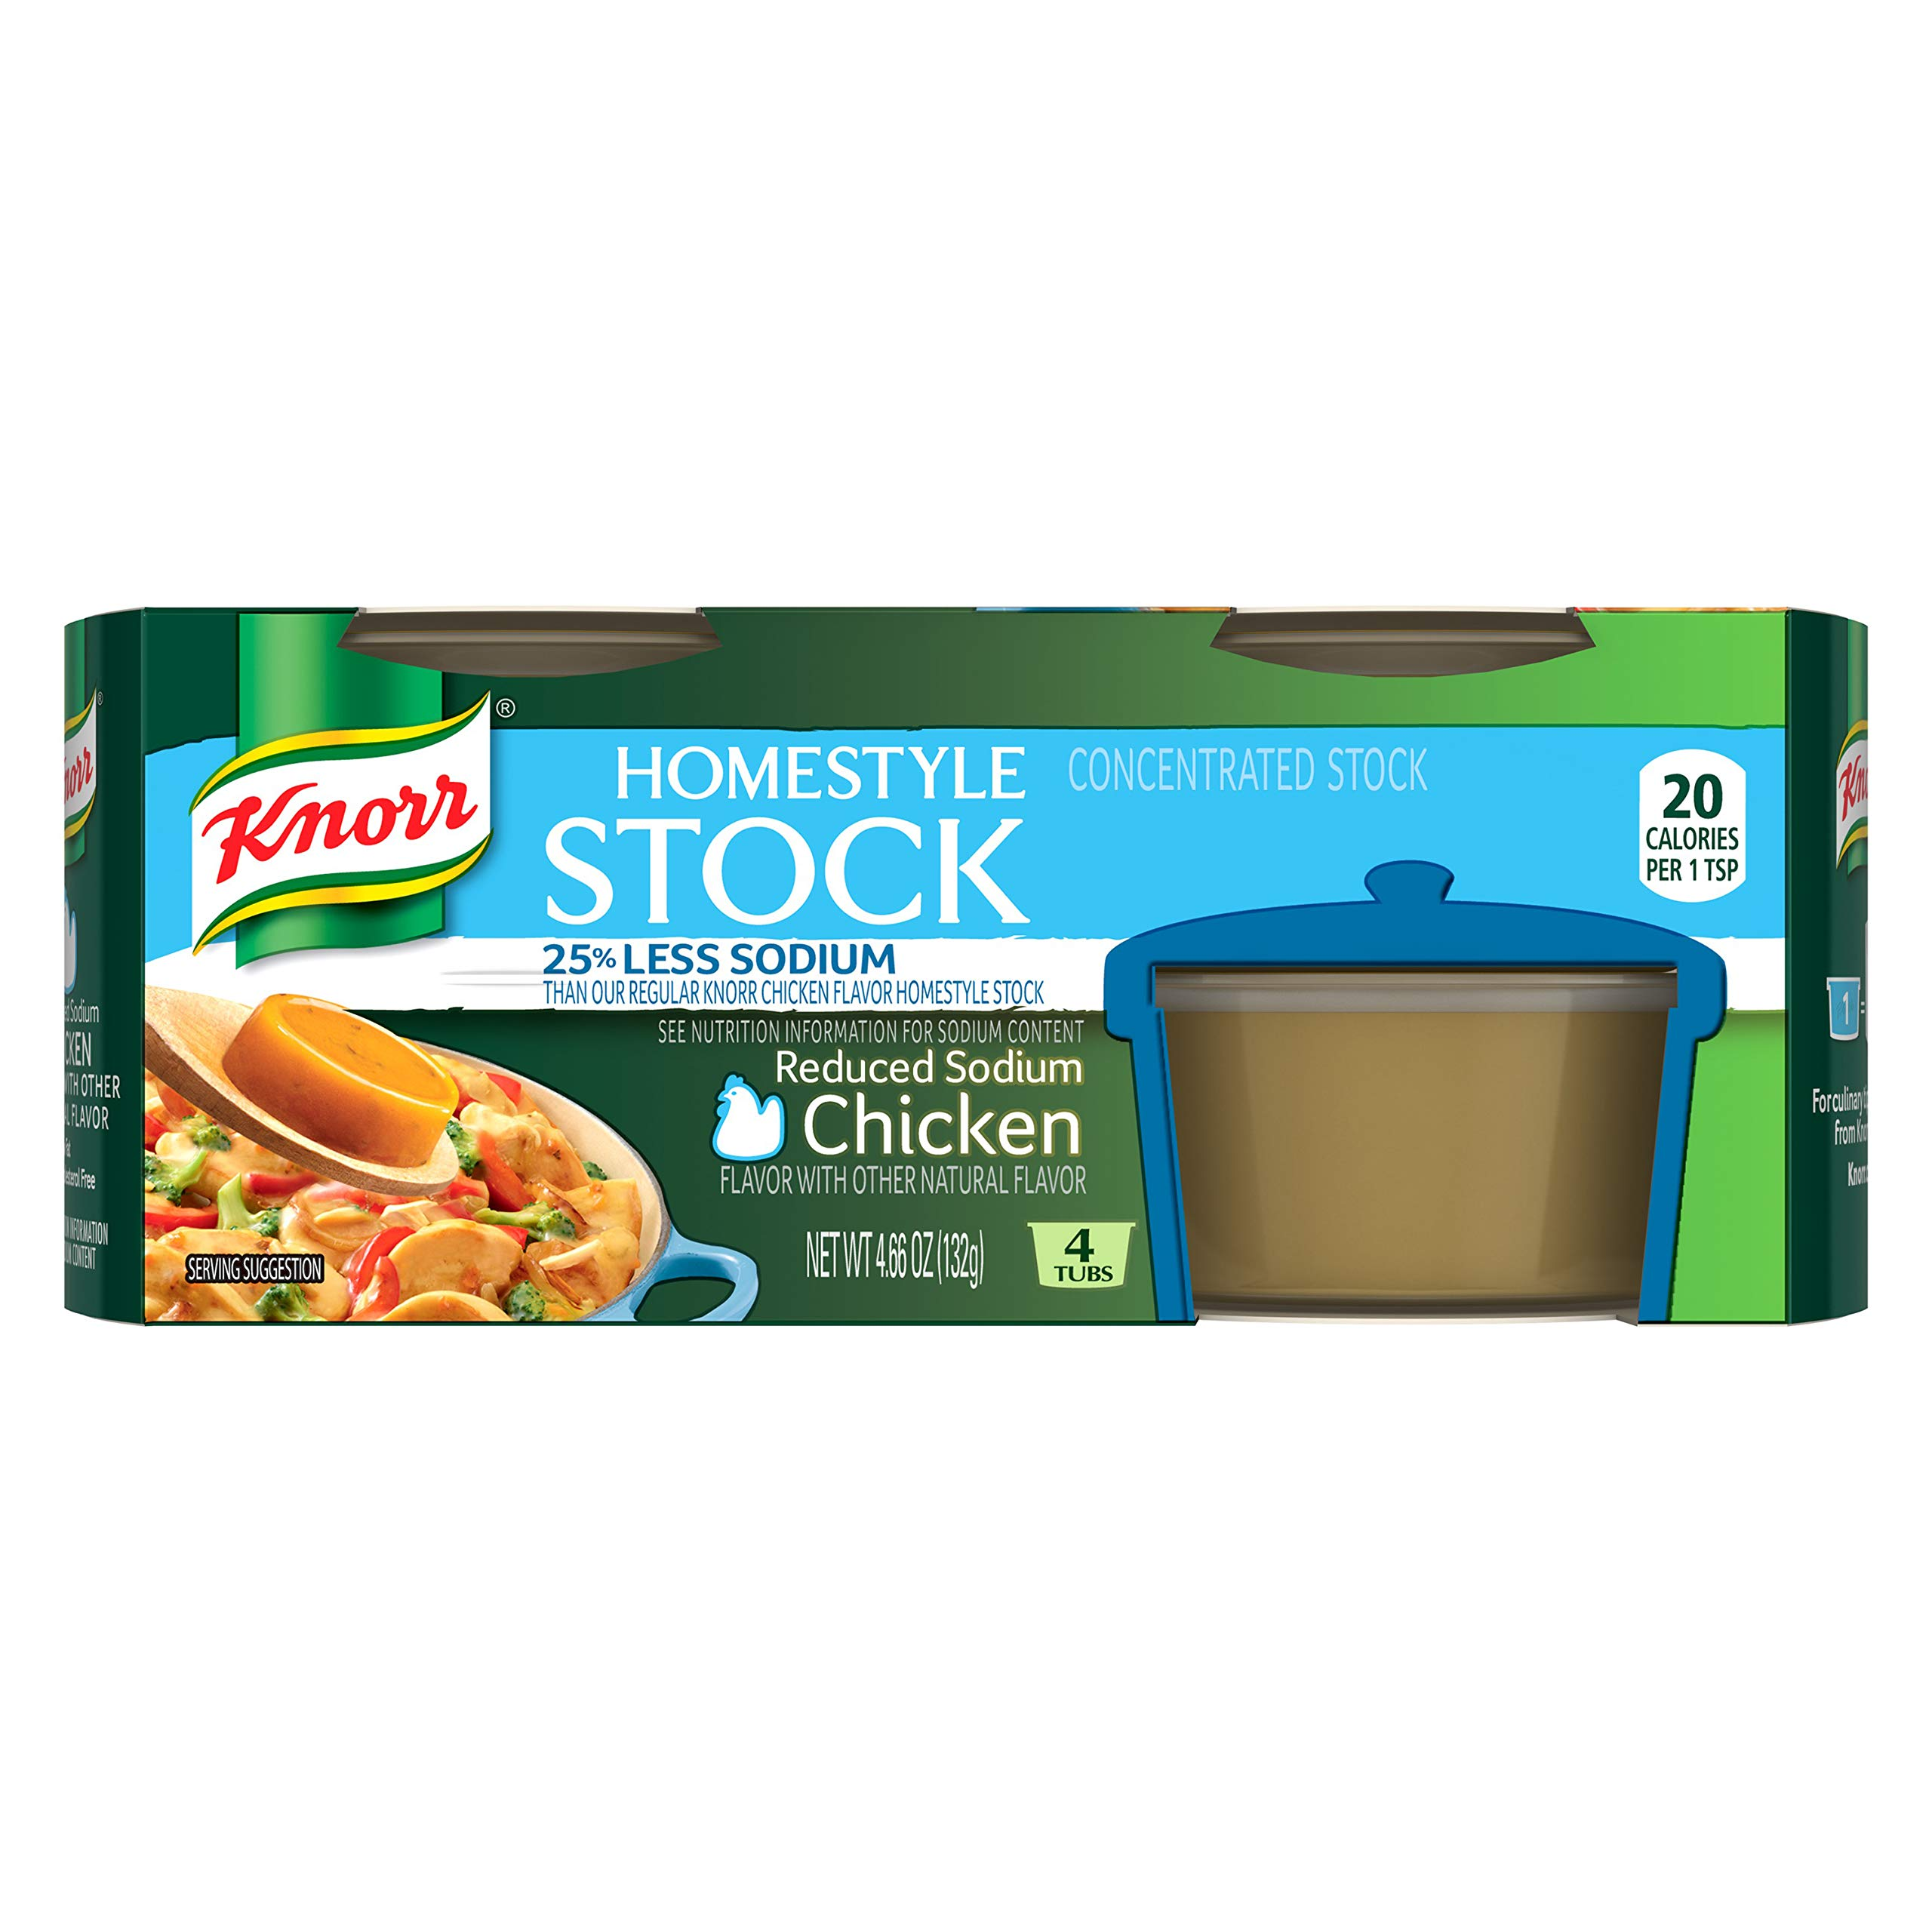 Amazon.com : Knorr Homestyle Stock Concentrated Broth, Beef 4.66 oz ...